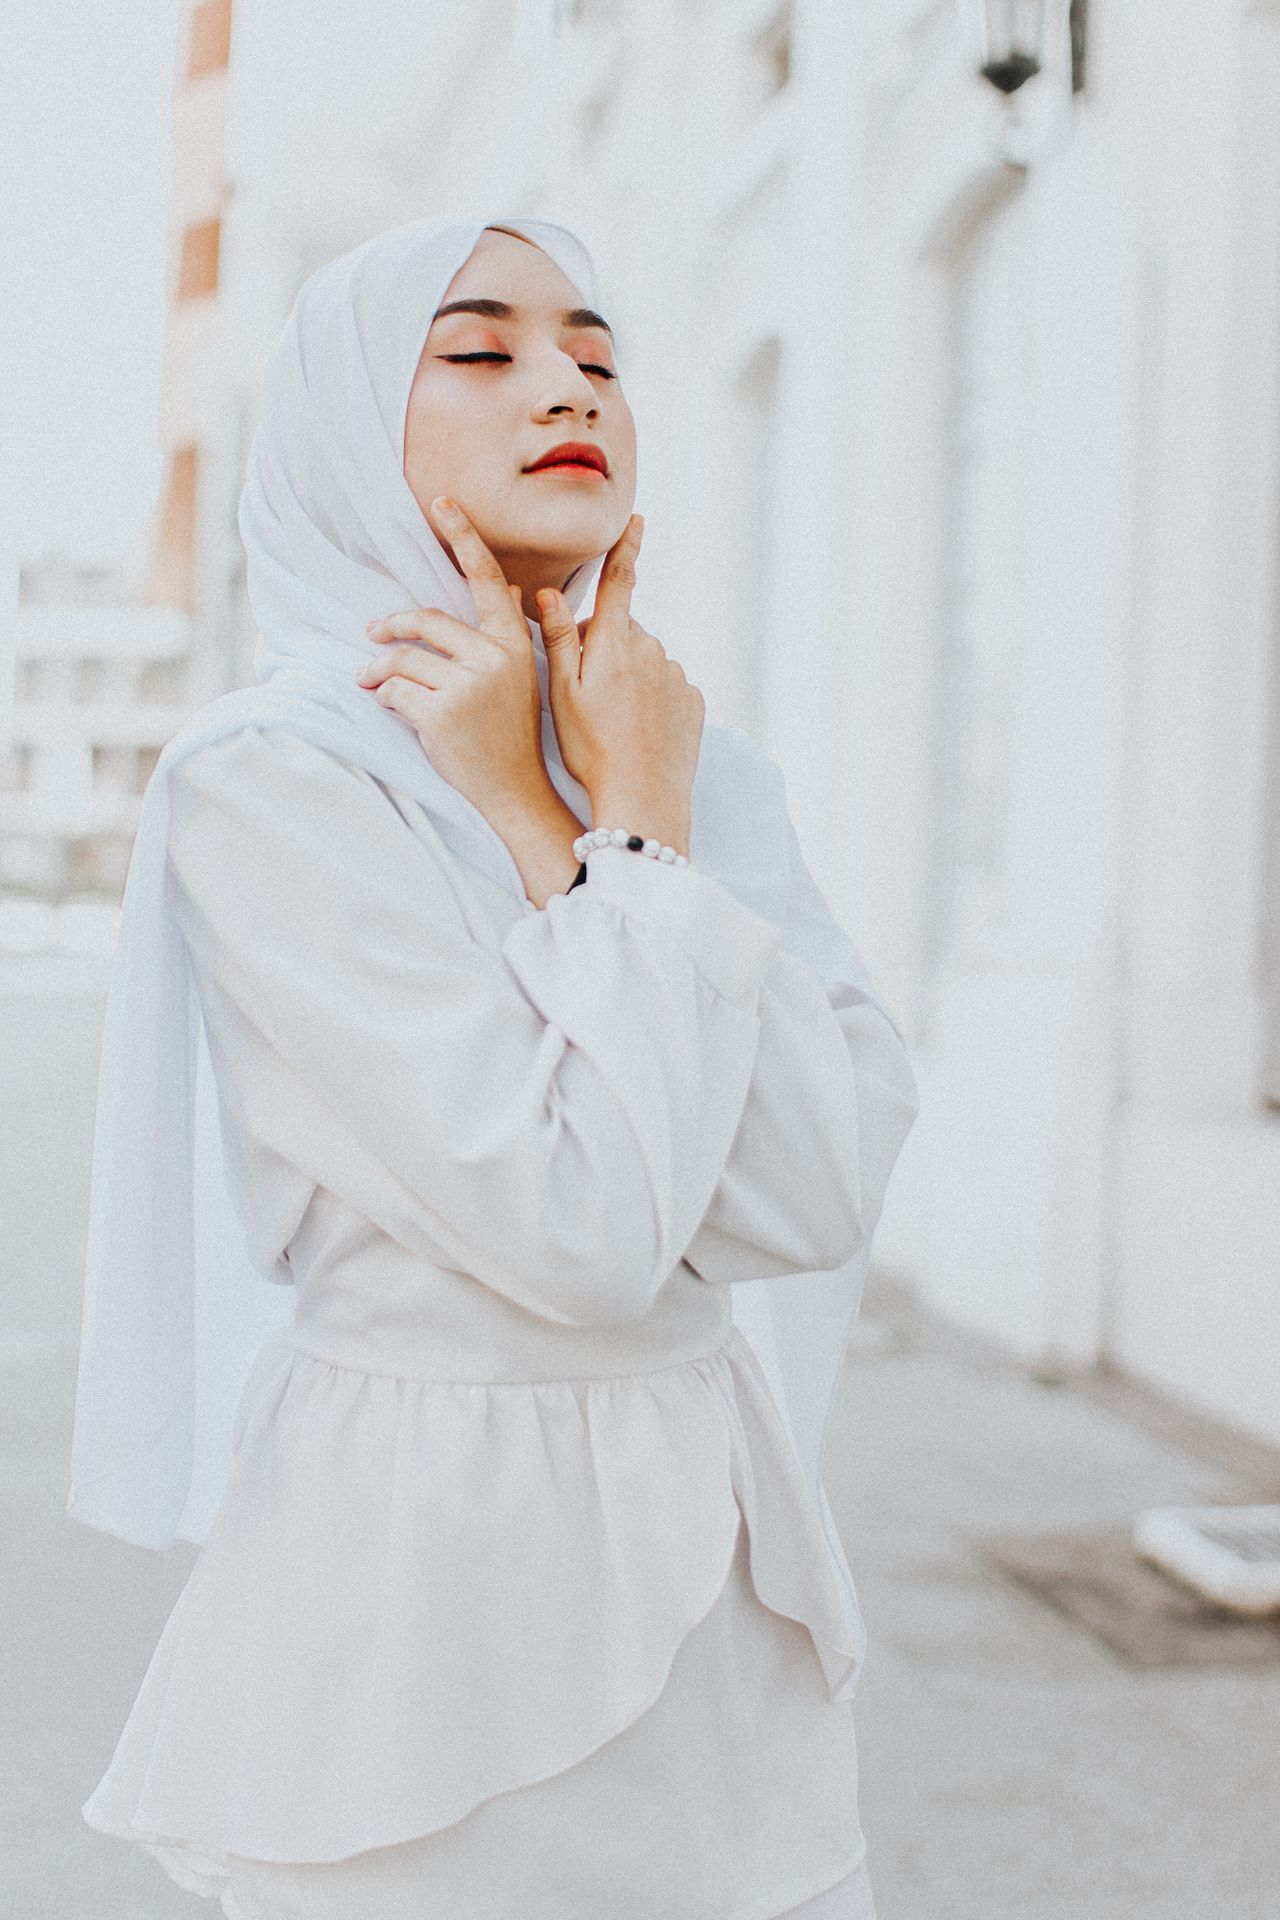 Beautiful young woman wearing hijab while standing against building